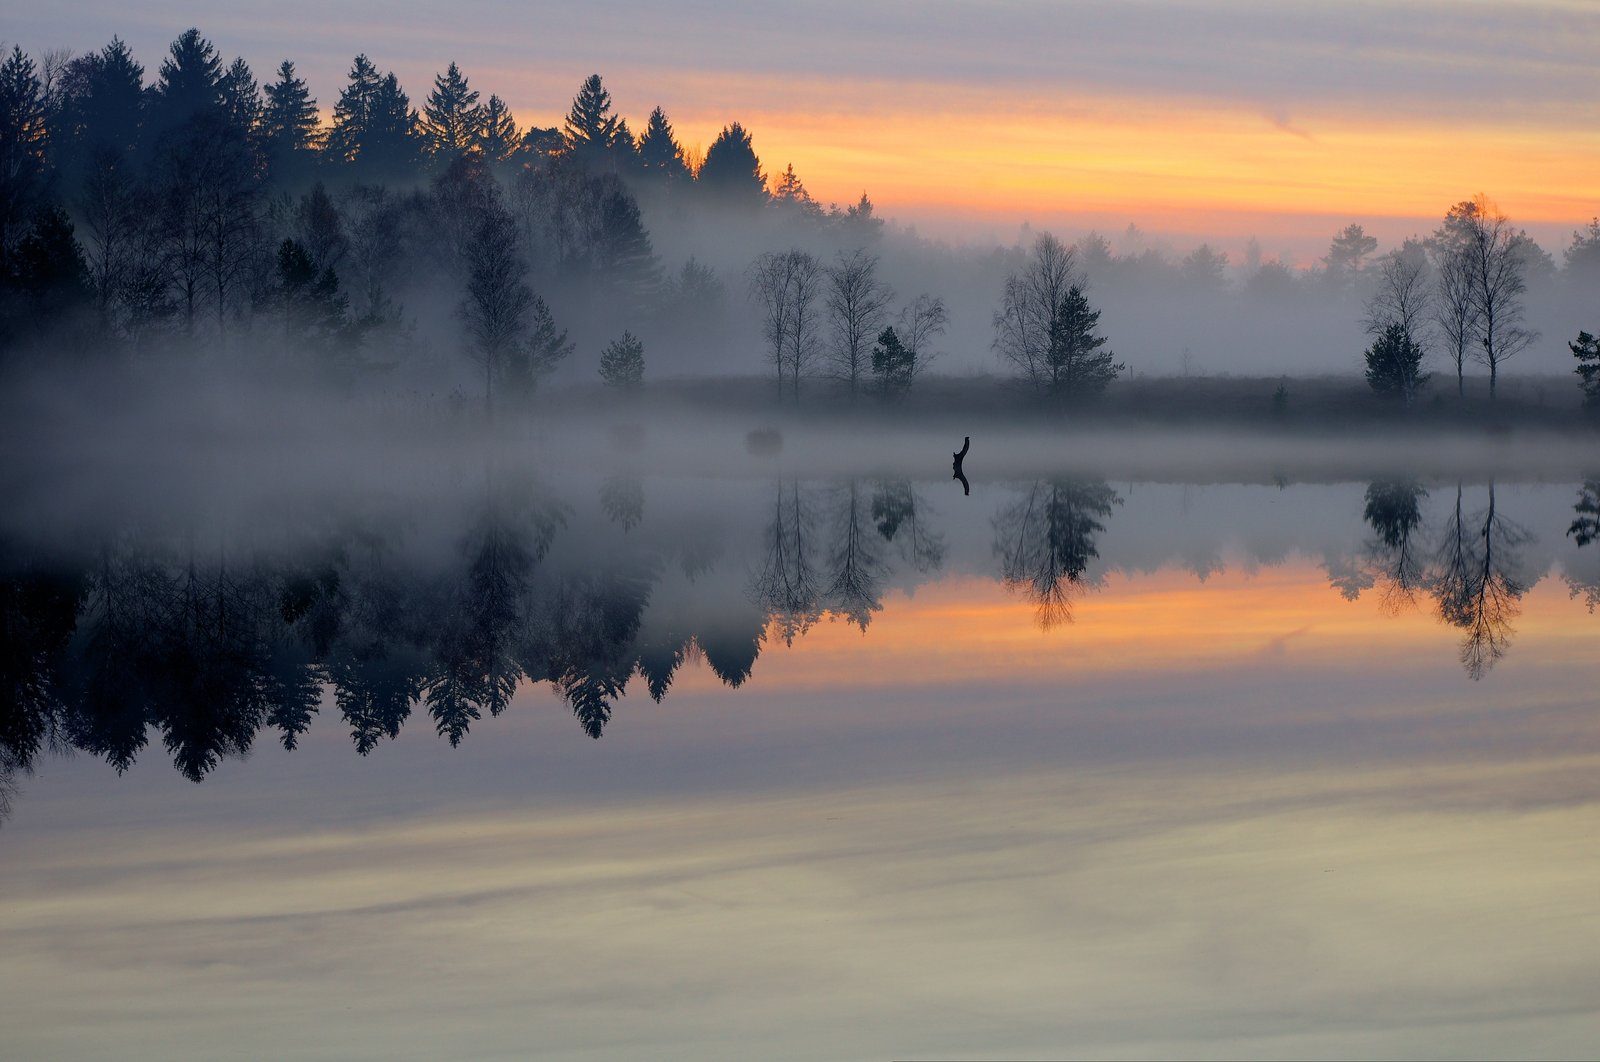 misty lake by burtn-d5m4i5m